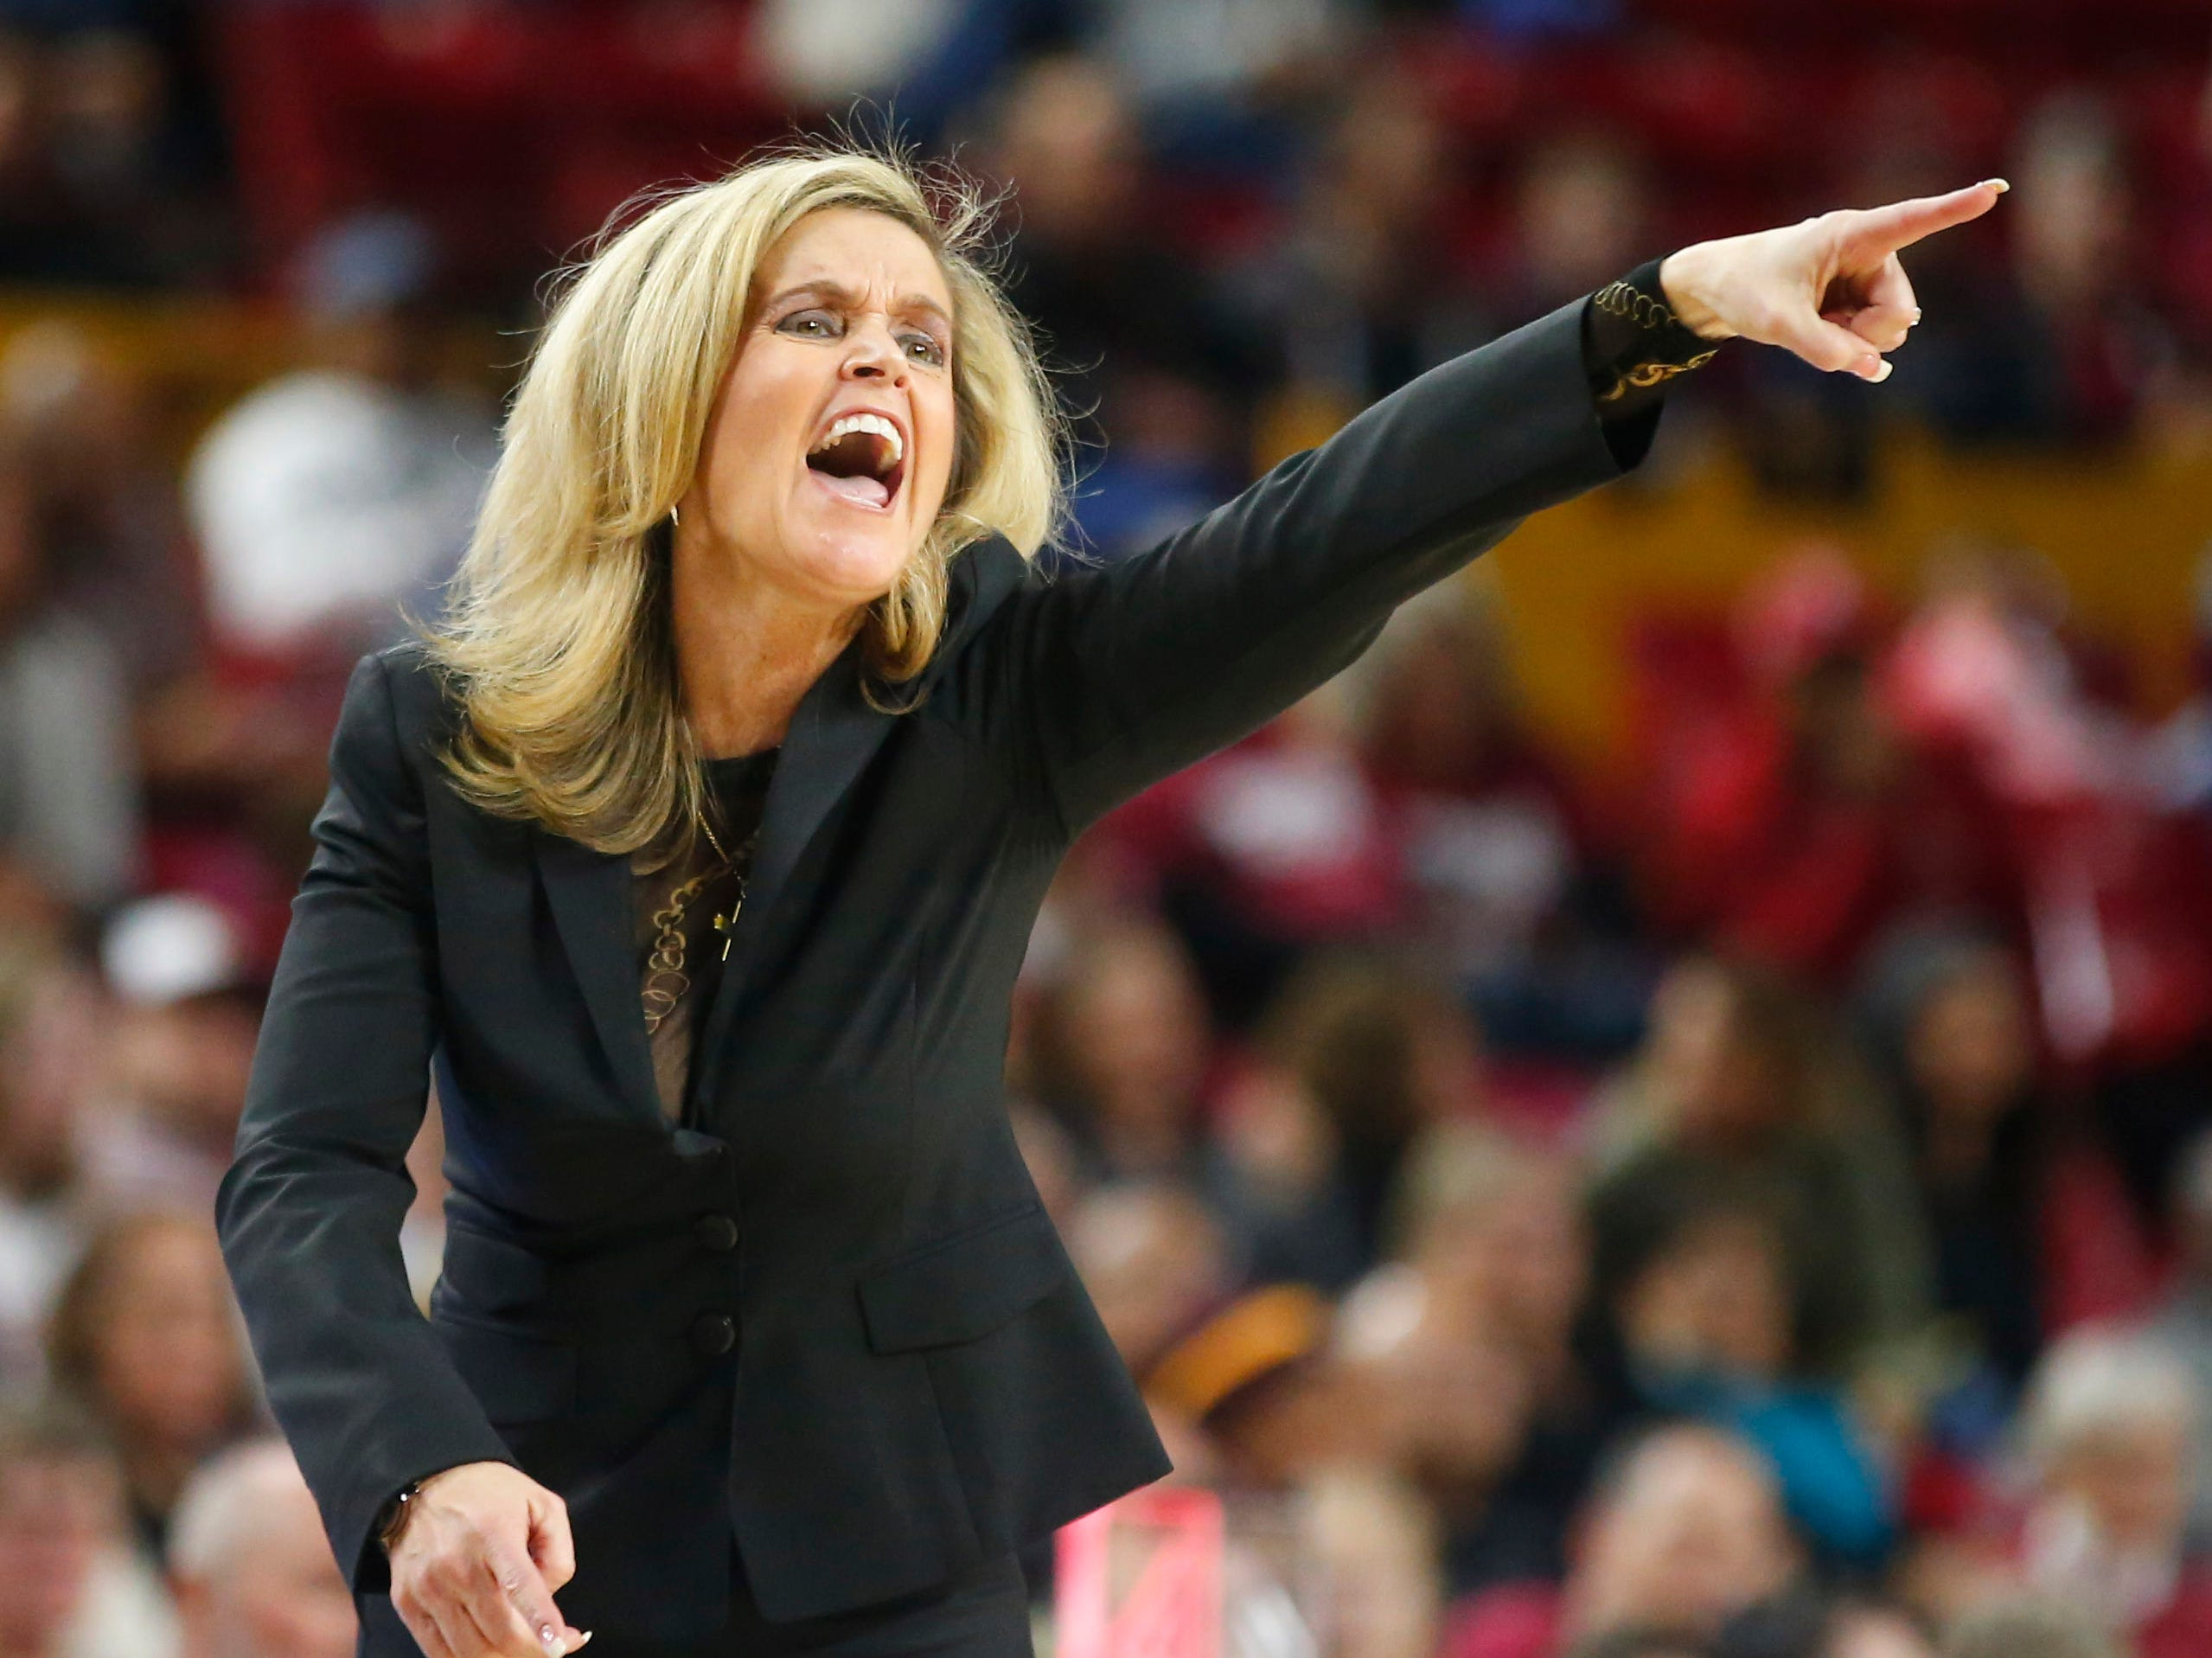 Arizona State University head coach Charli Turner Thorne yells at her team during a women's basketball game against Stanford University at Well Fargo Arena in Tempe on January 11.